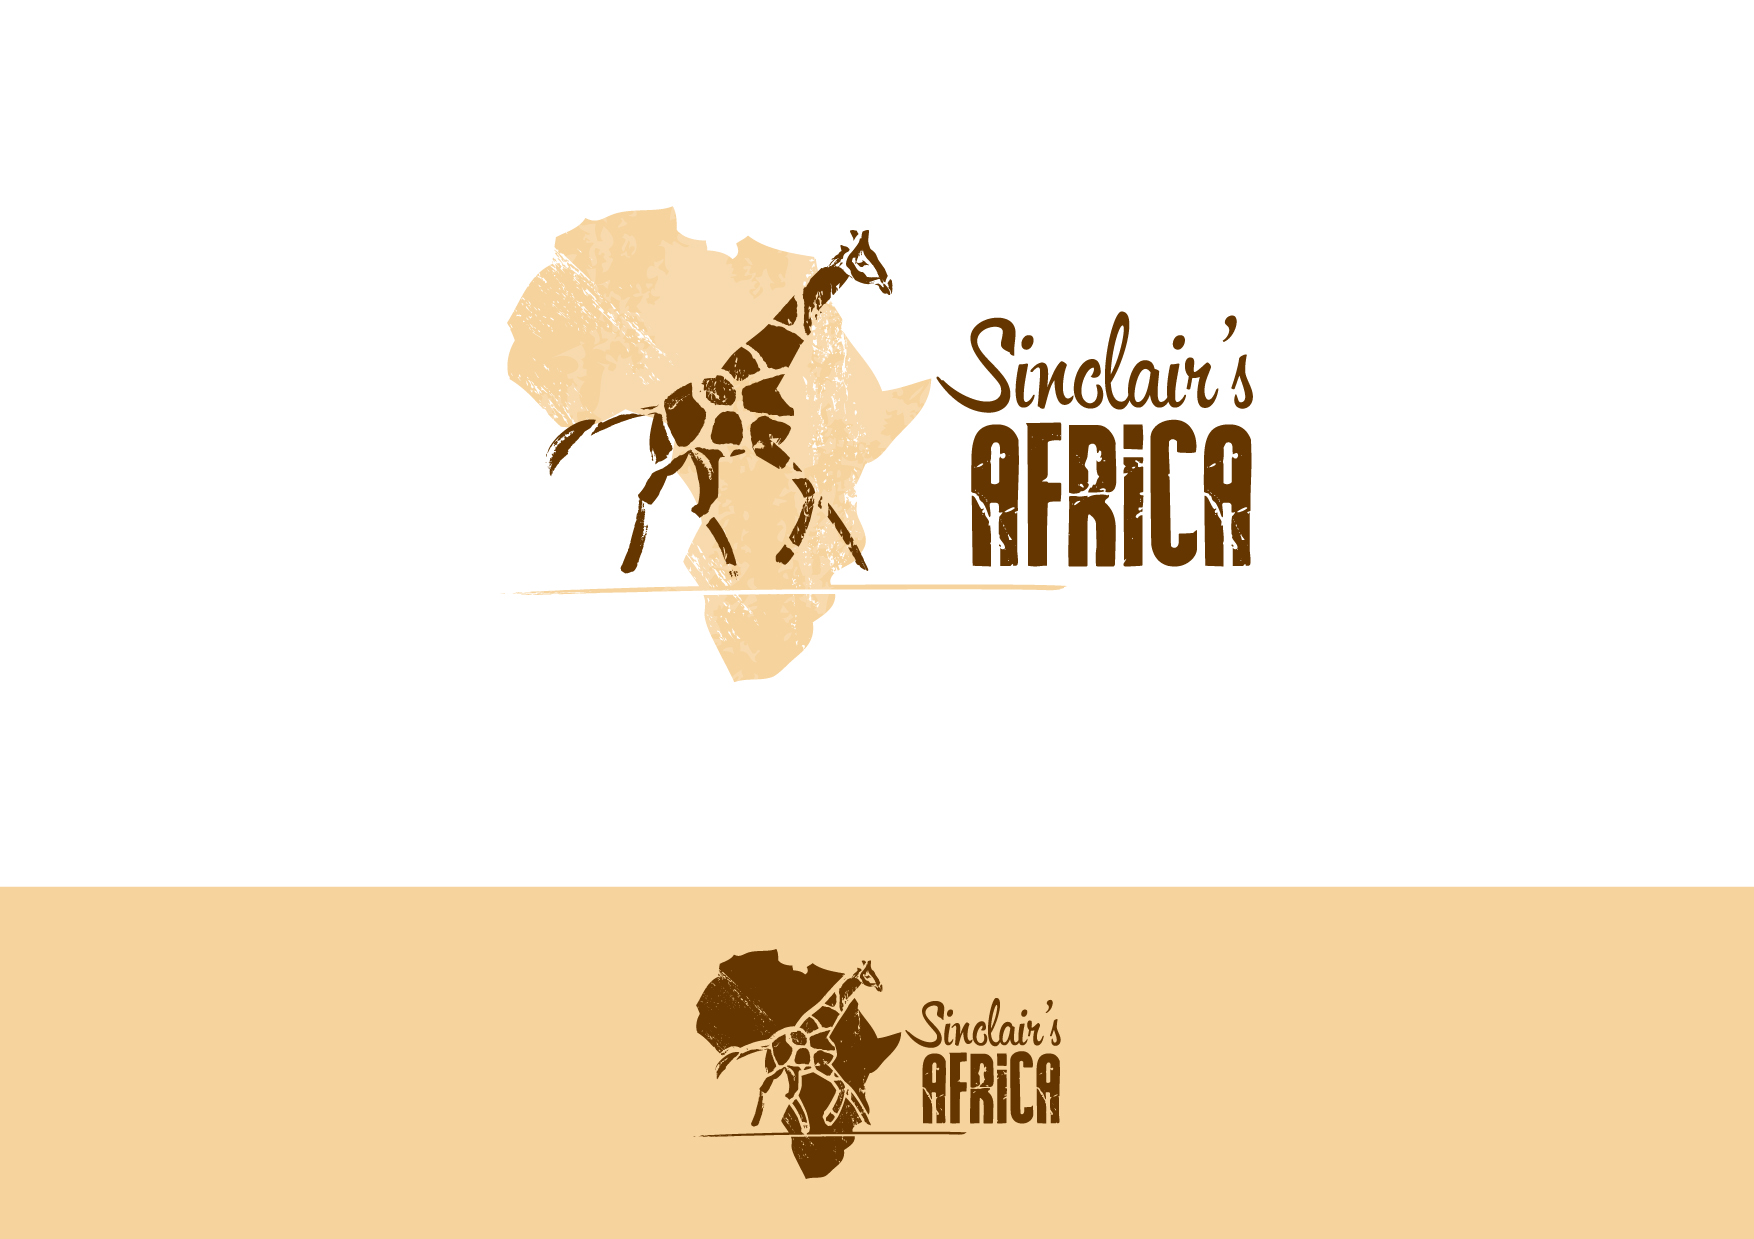 Sinclairs Africa